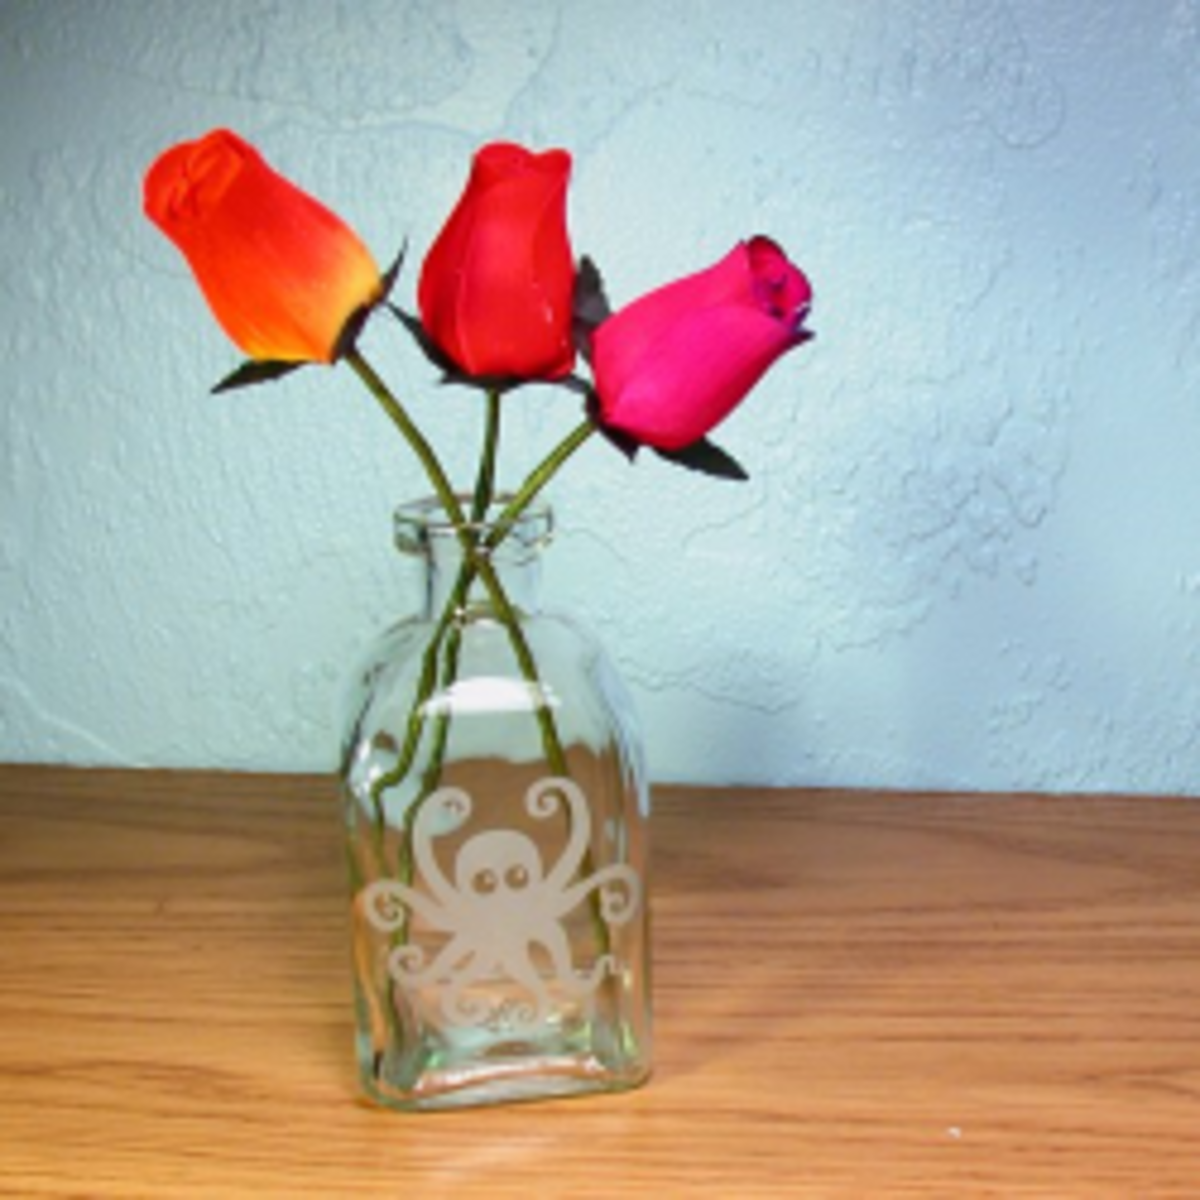 ★ DIY Vases | Craft Tutorials For Making Your Own Vase ★